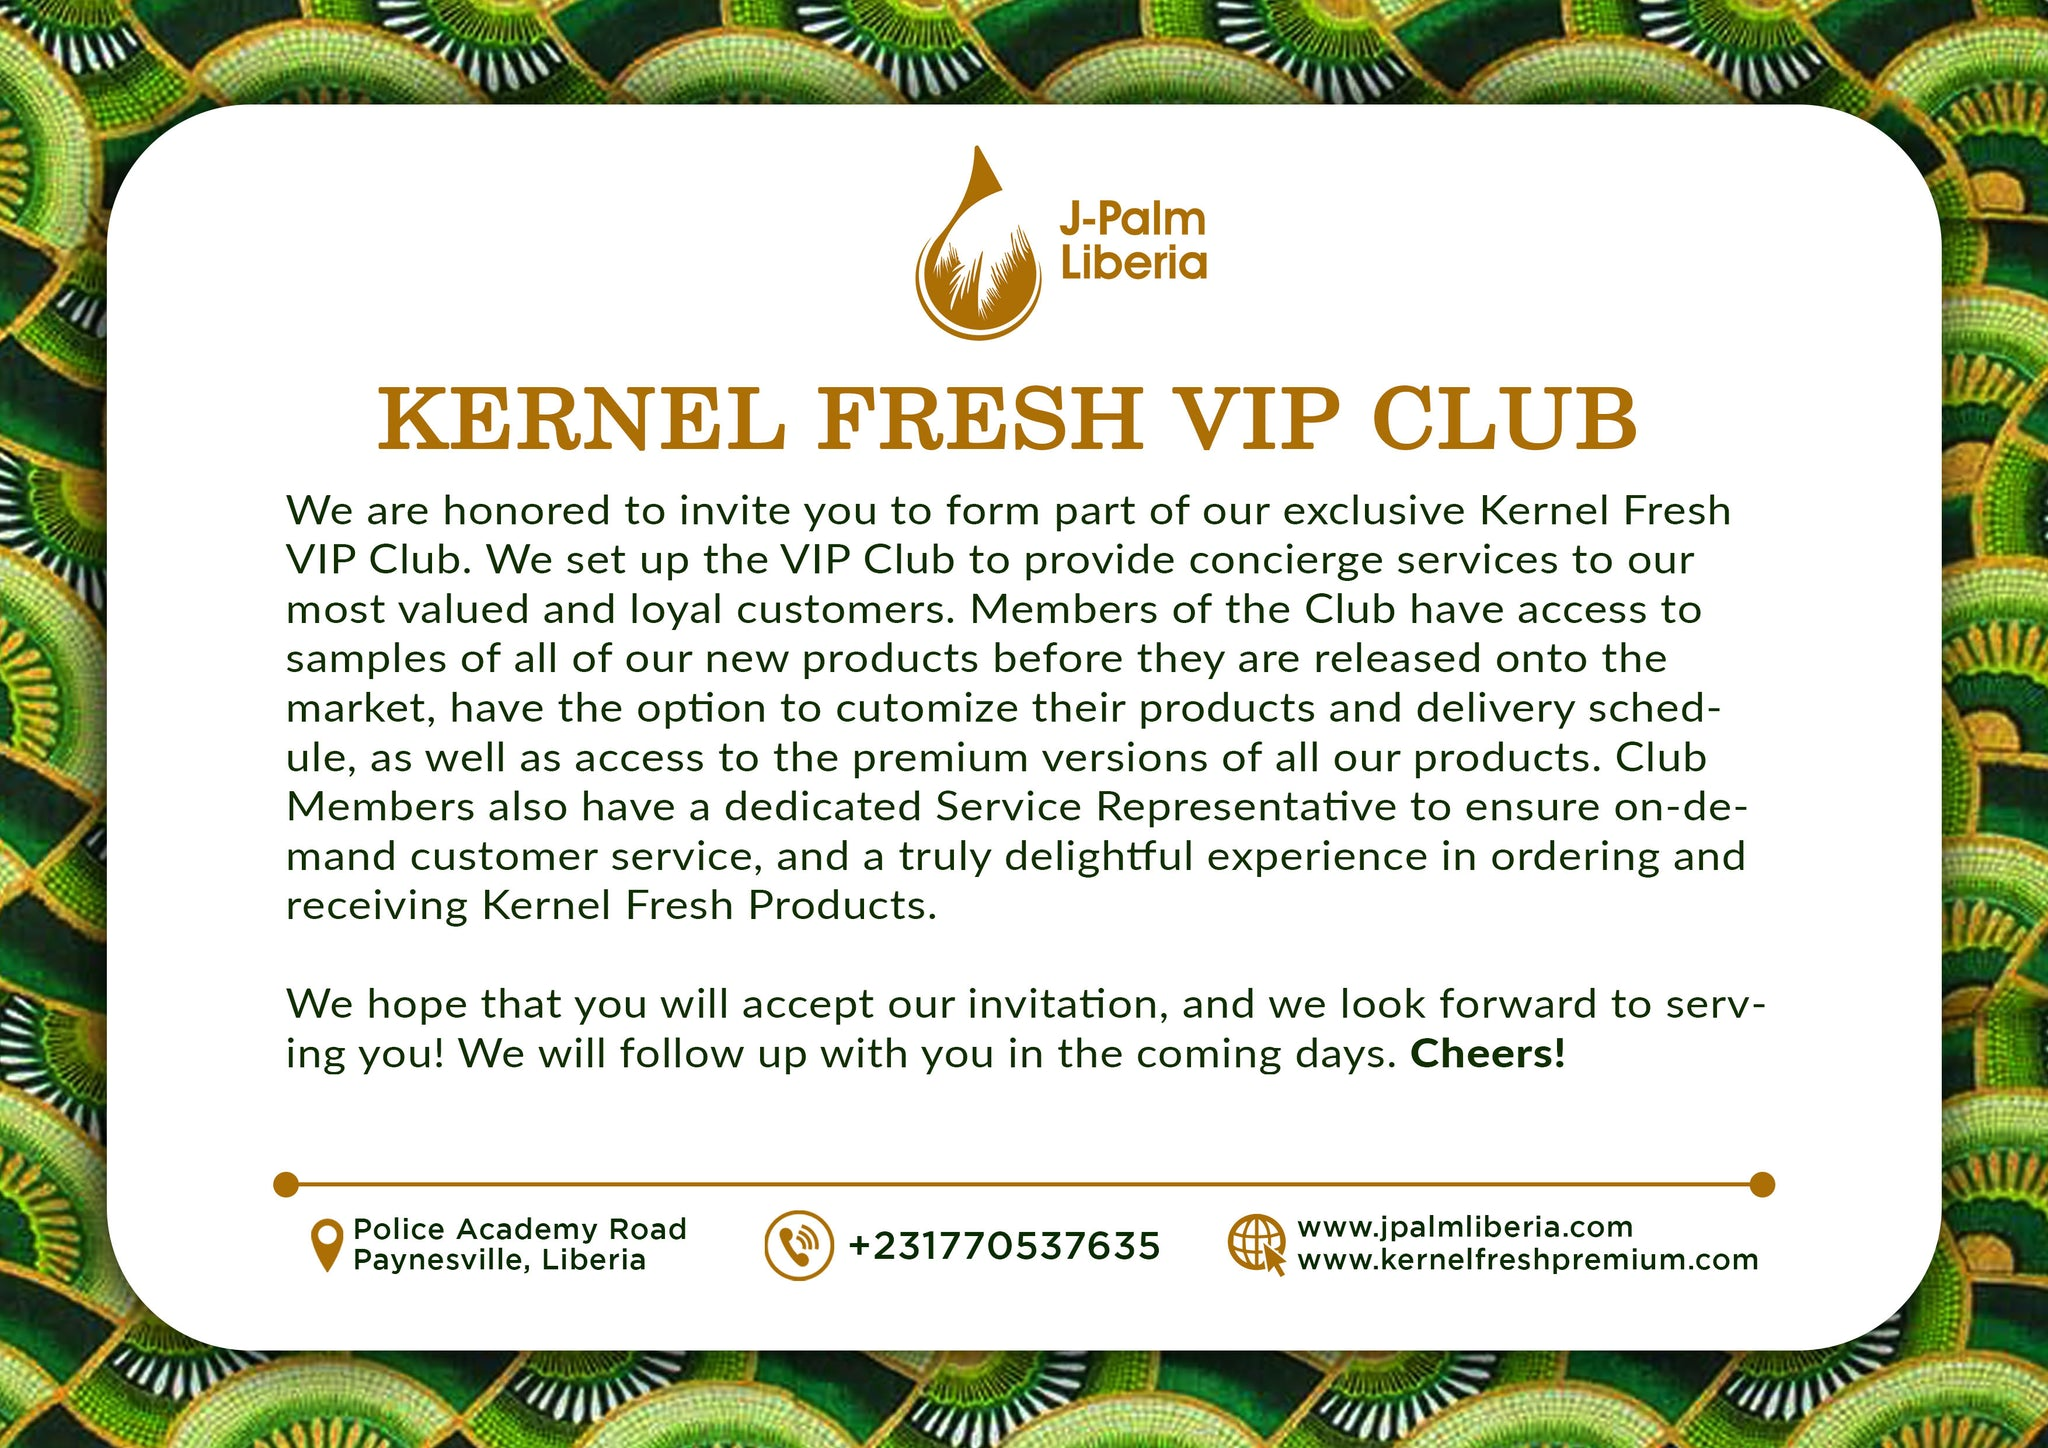 Kernel Fresh VIP Club Kit